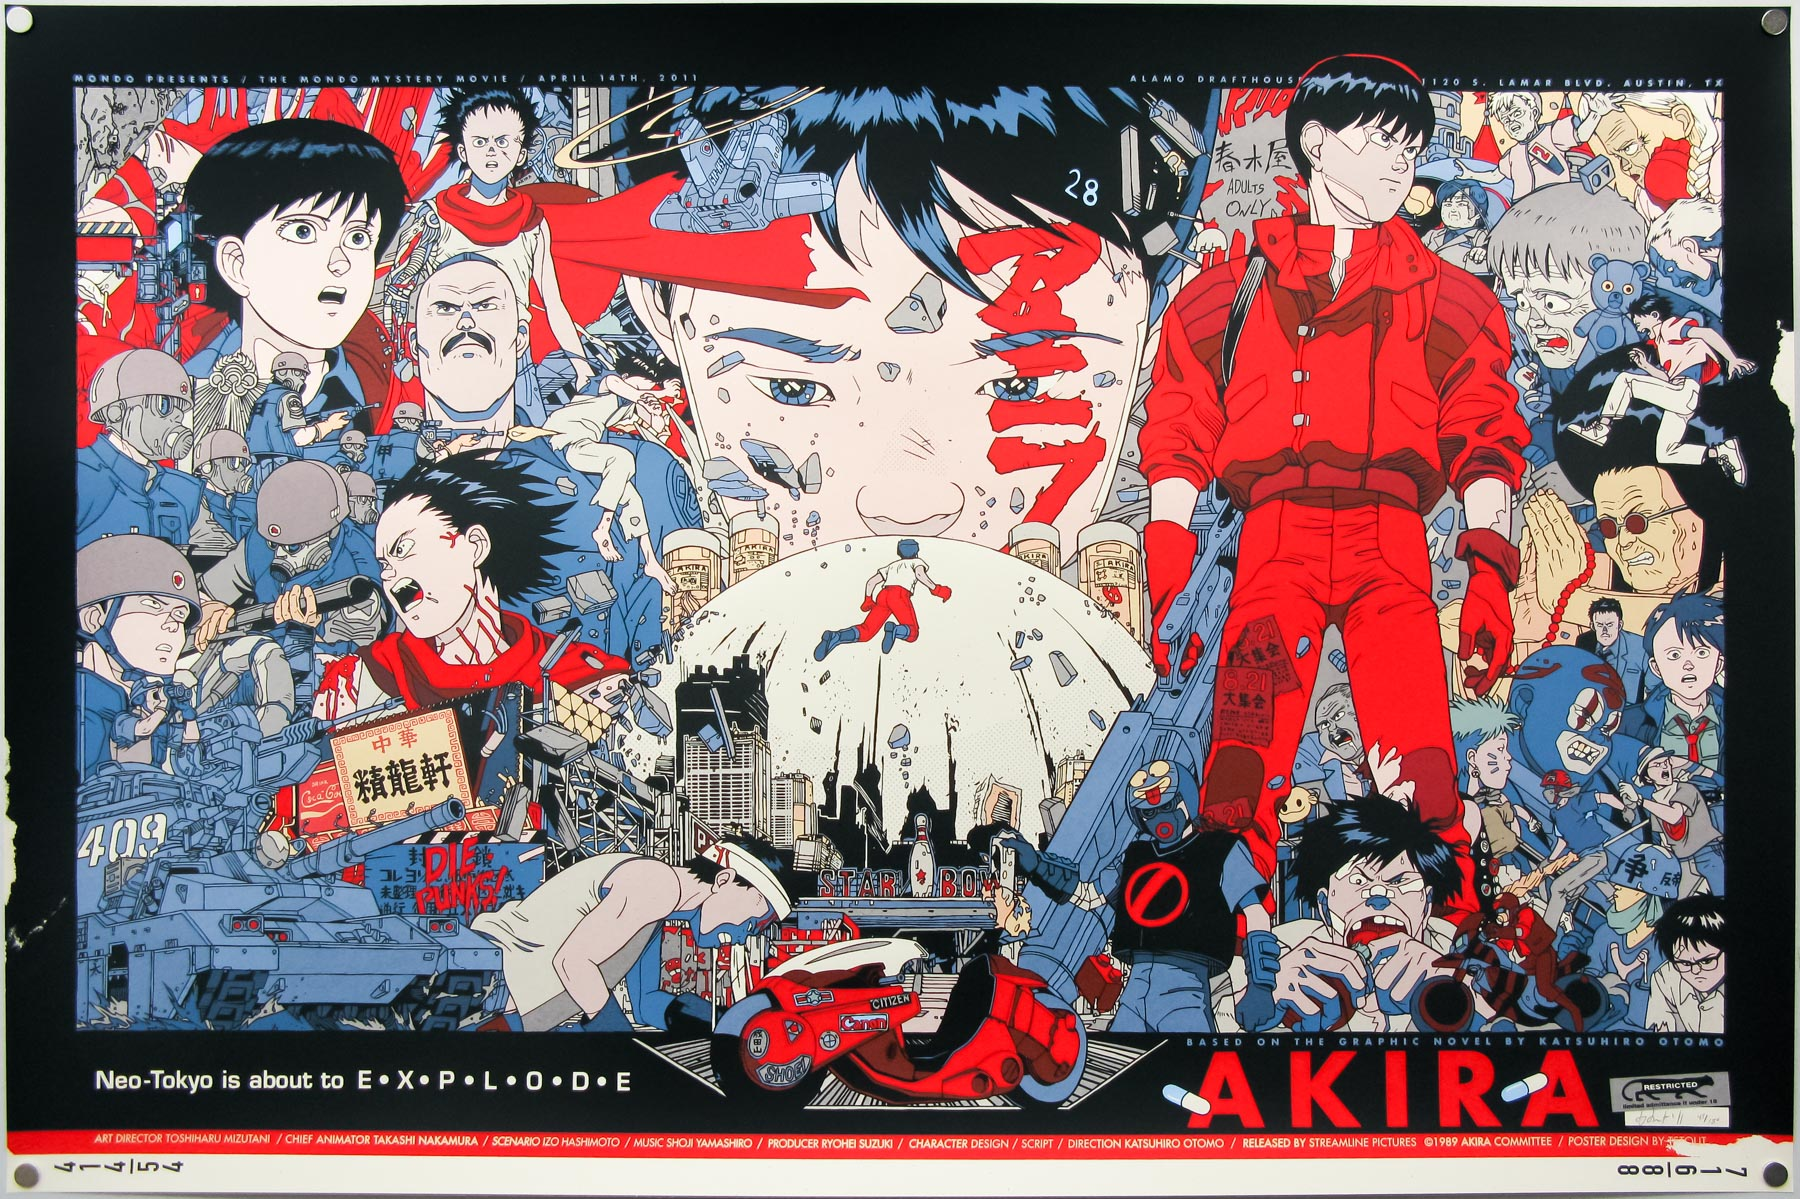 The regular style Akira screen print by Tyler Stout (2011)